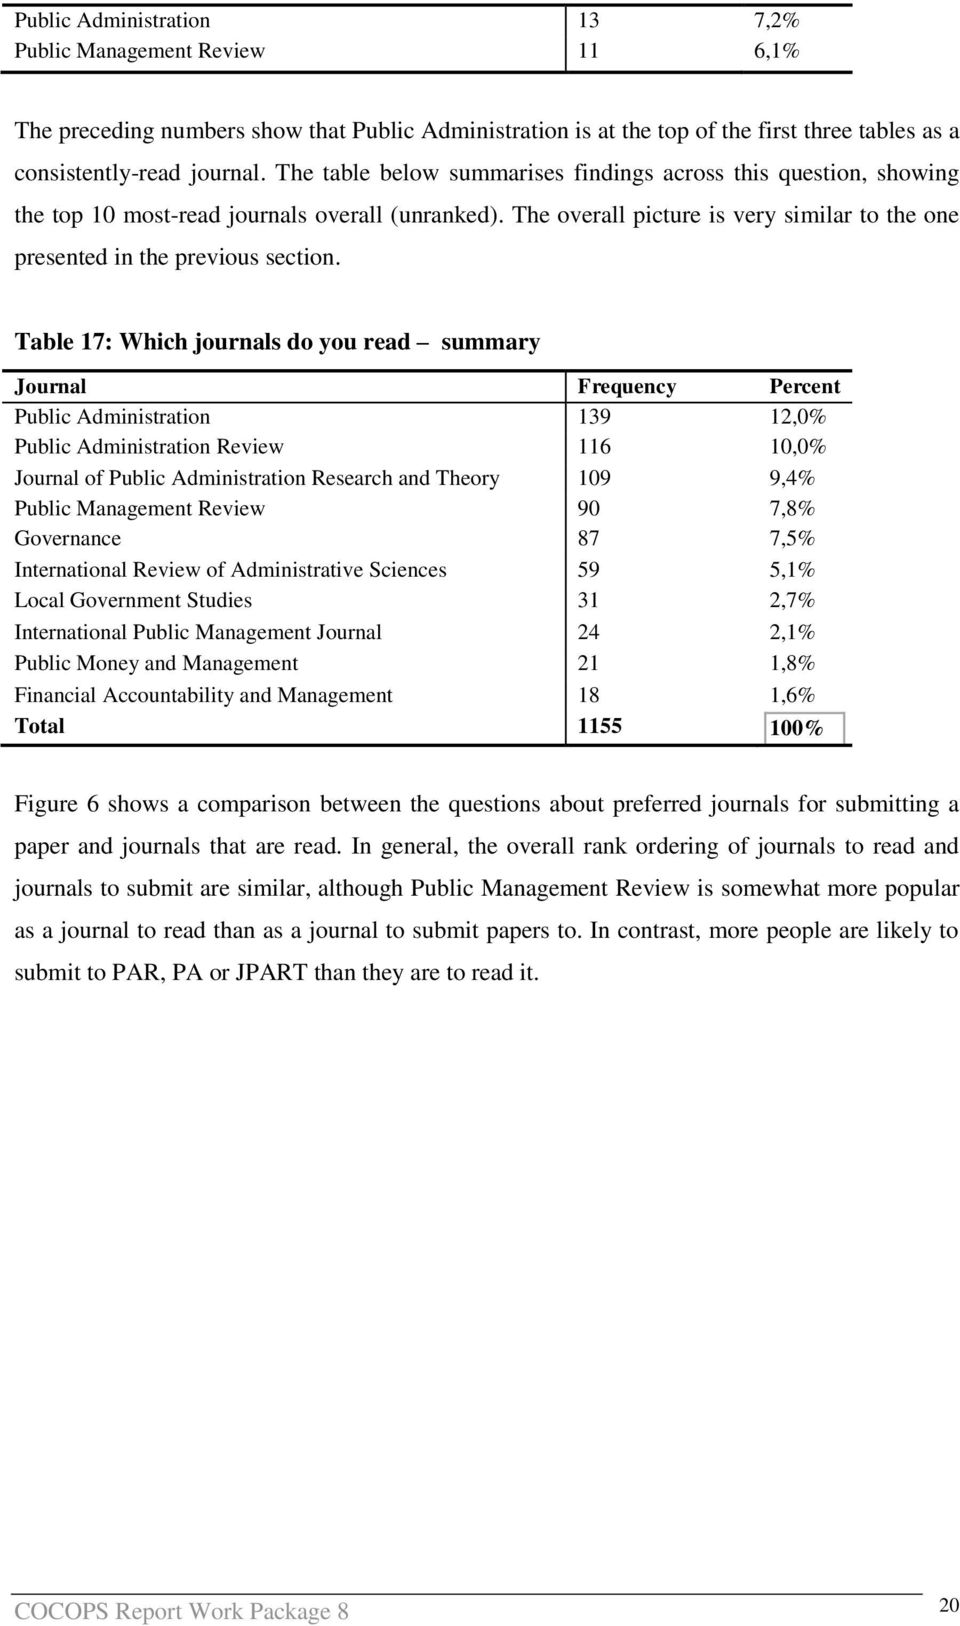 Table 17: Which journals do you read summary Journal Frequency Percent Public Administration 139 12,0% Public Administration Review 116 10,0% Journal of Public Administration Research and Theory 109